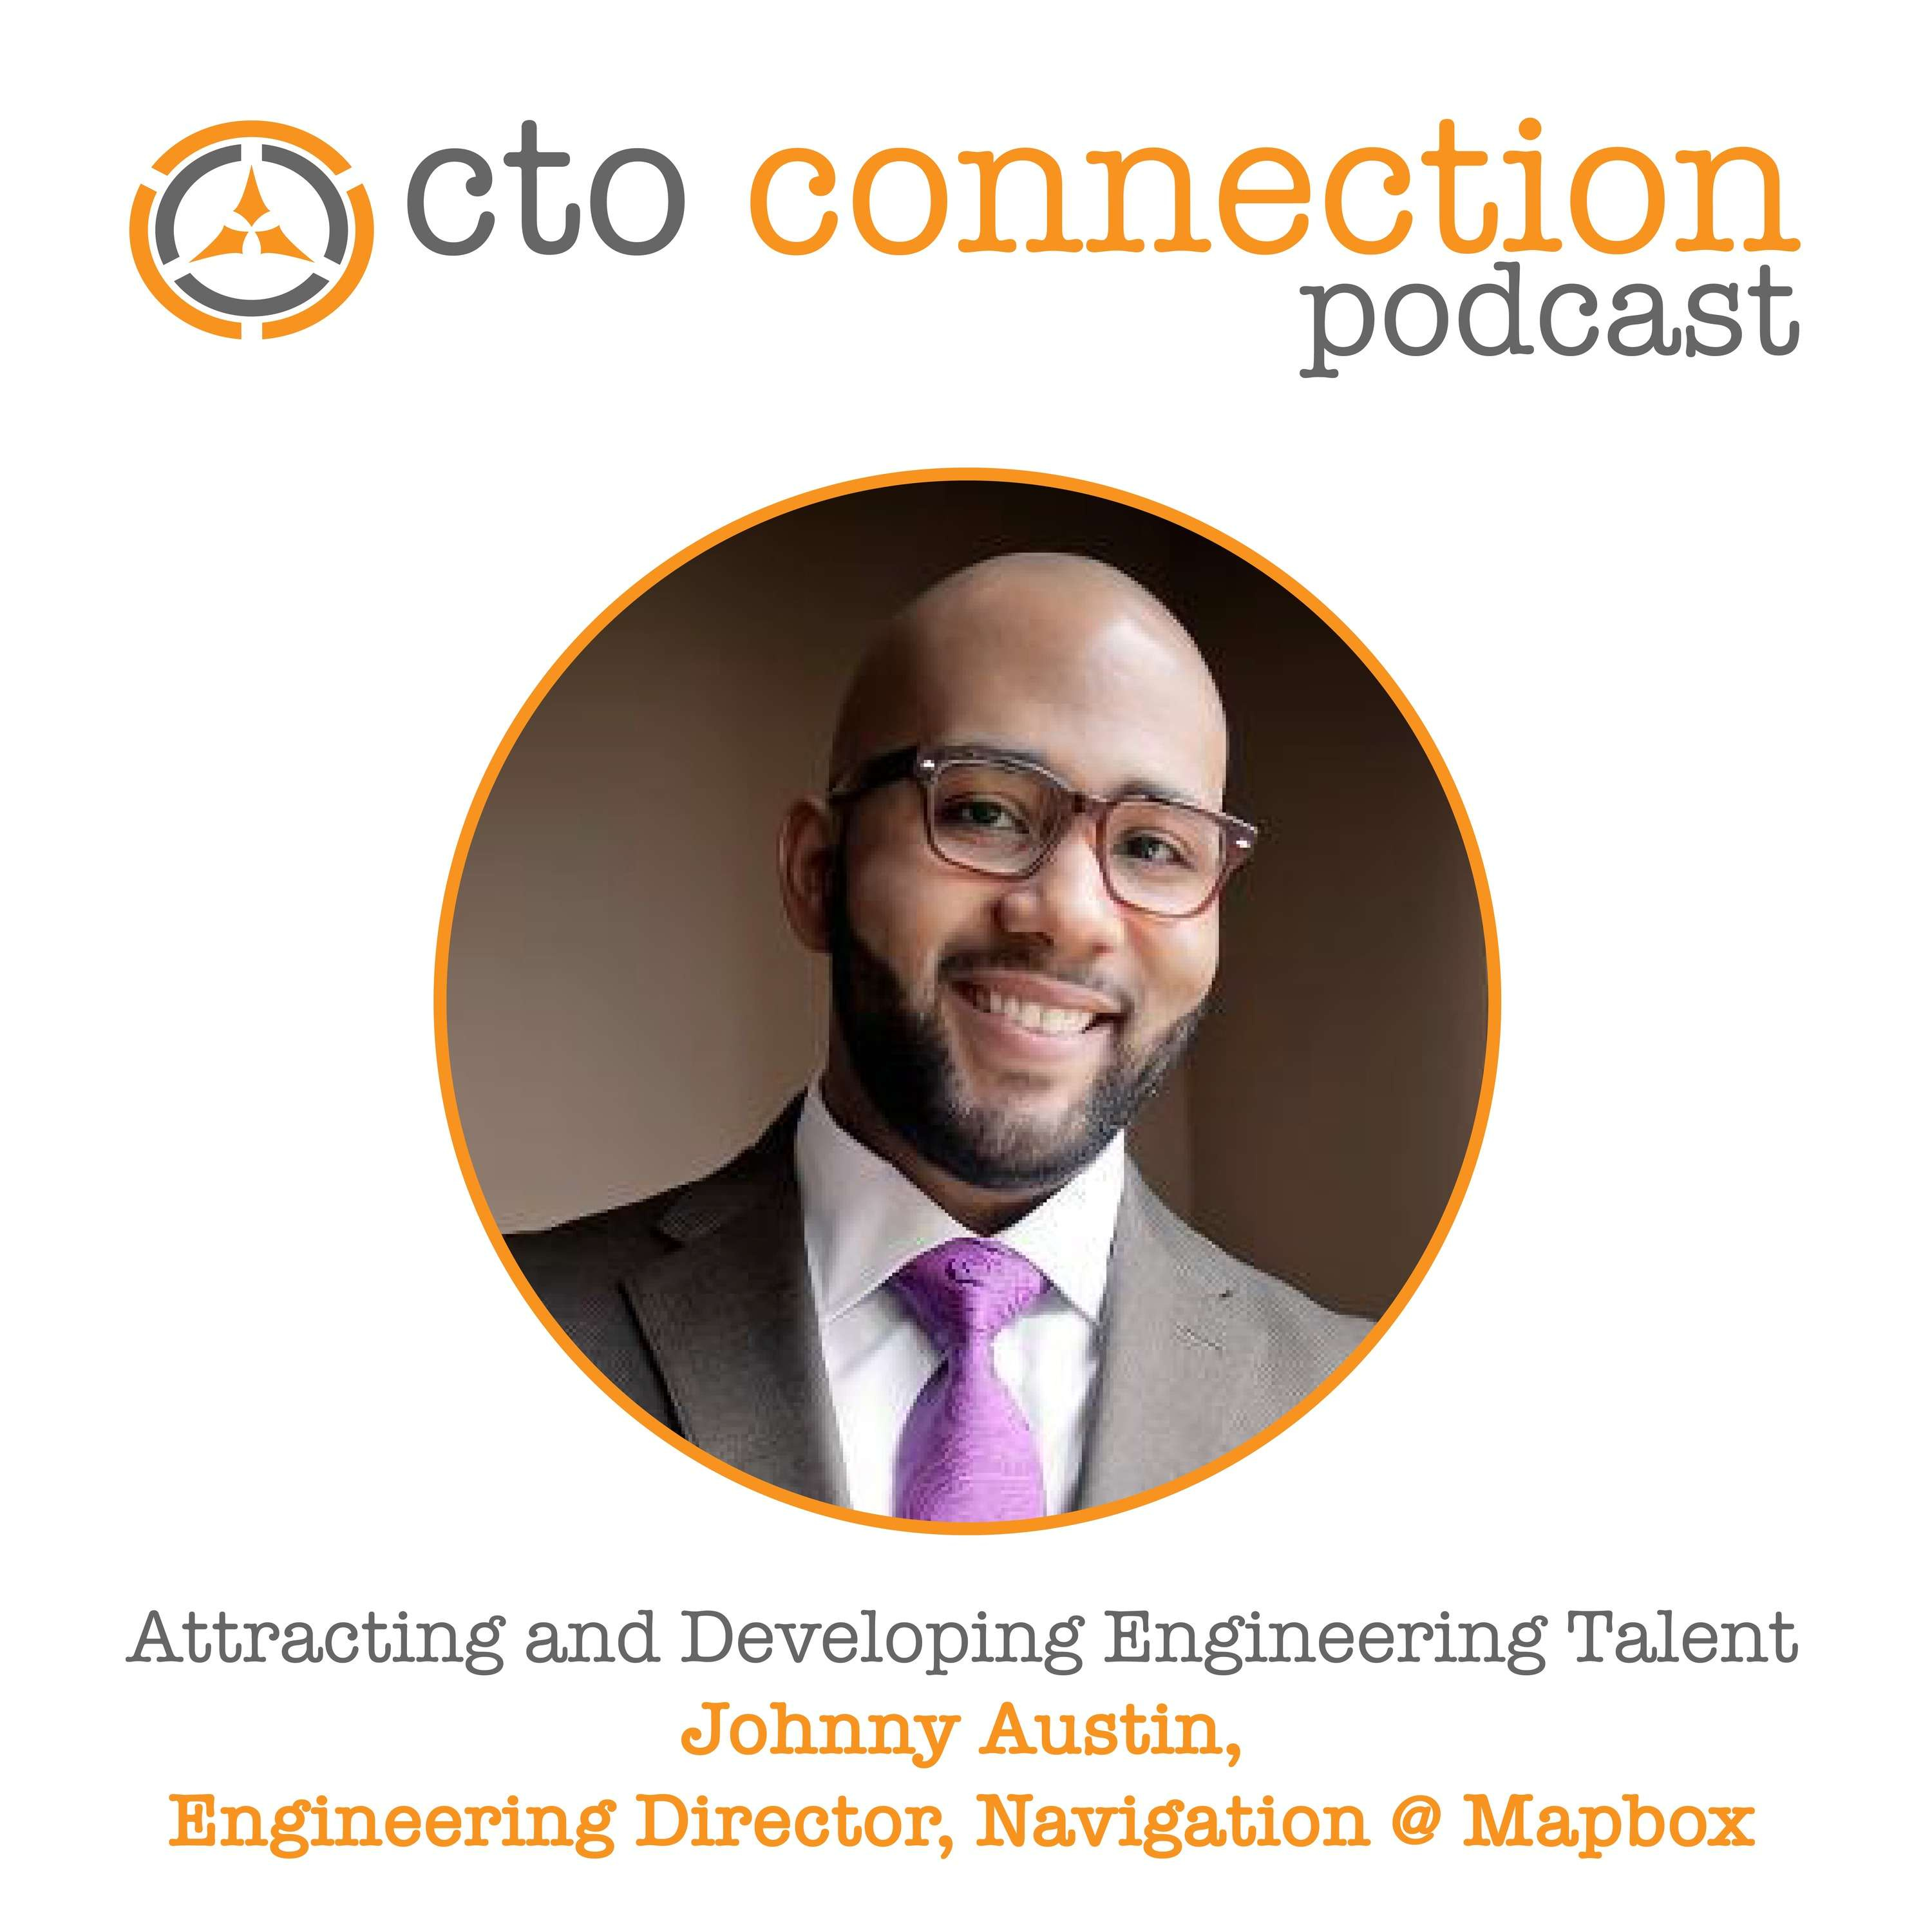 Attracting and Developing Engineering Talent with Johnny Austin, Engineering Director @ Mapbox